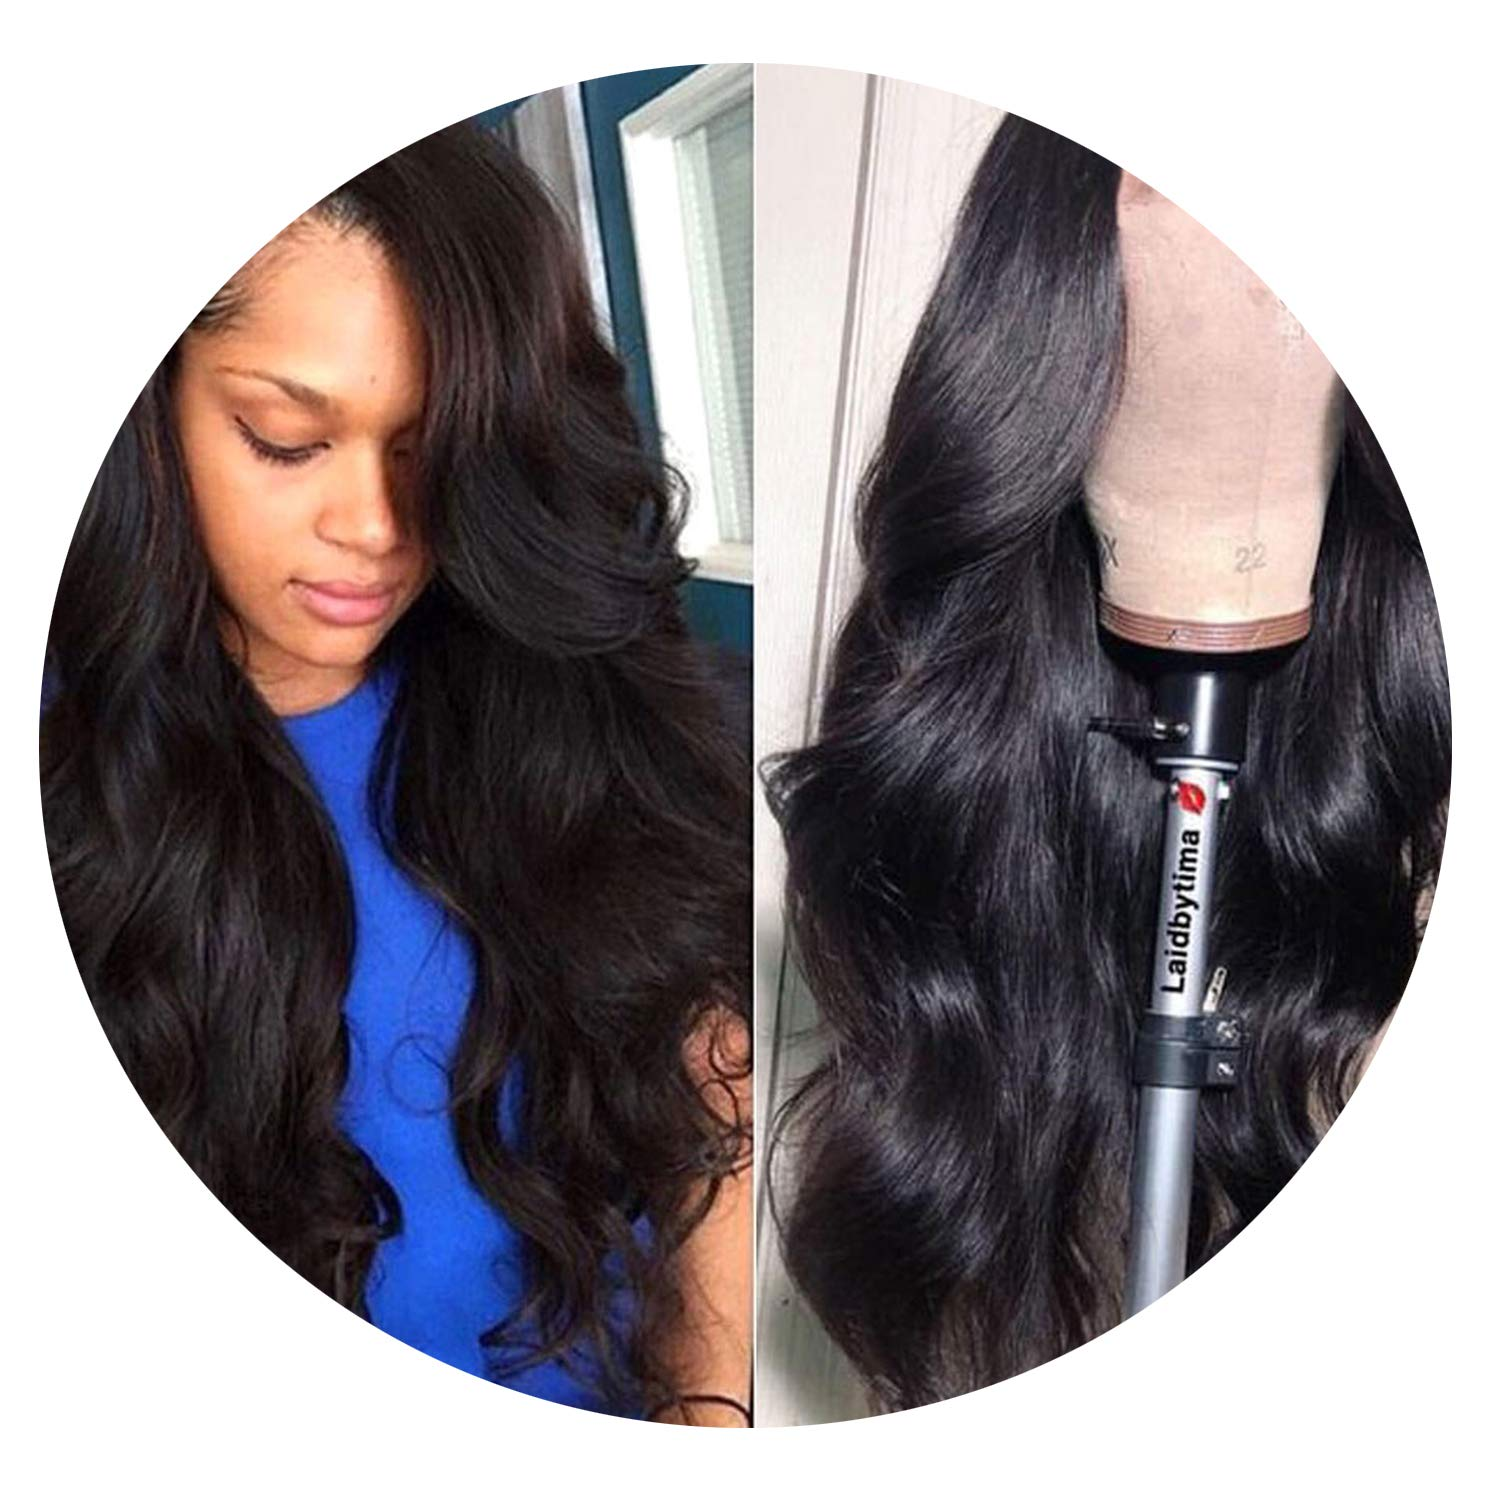 180% Lace Front Human Hair Wigs 13X4 Pre Plucked Remy Brazilian Body Wave Lace Frontal Wigs With Baby Hair For Black Women,Natural Color,10inches,180%